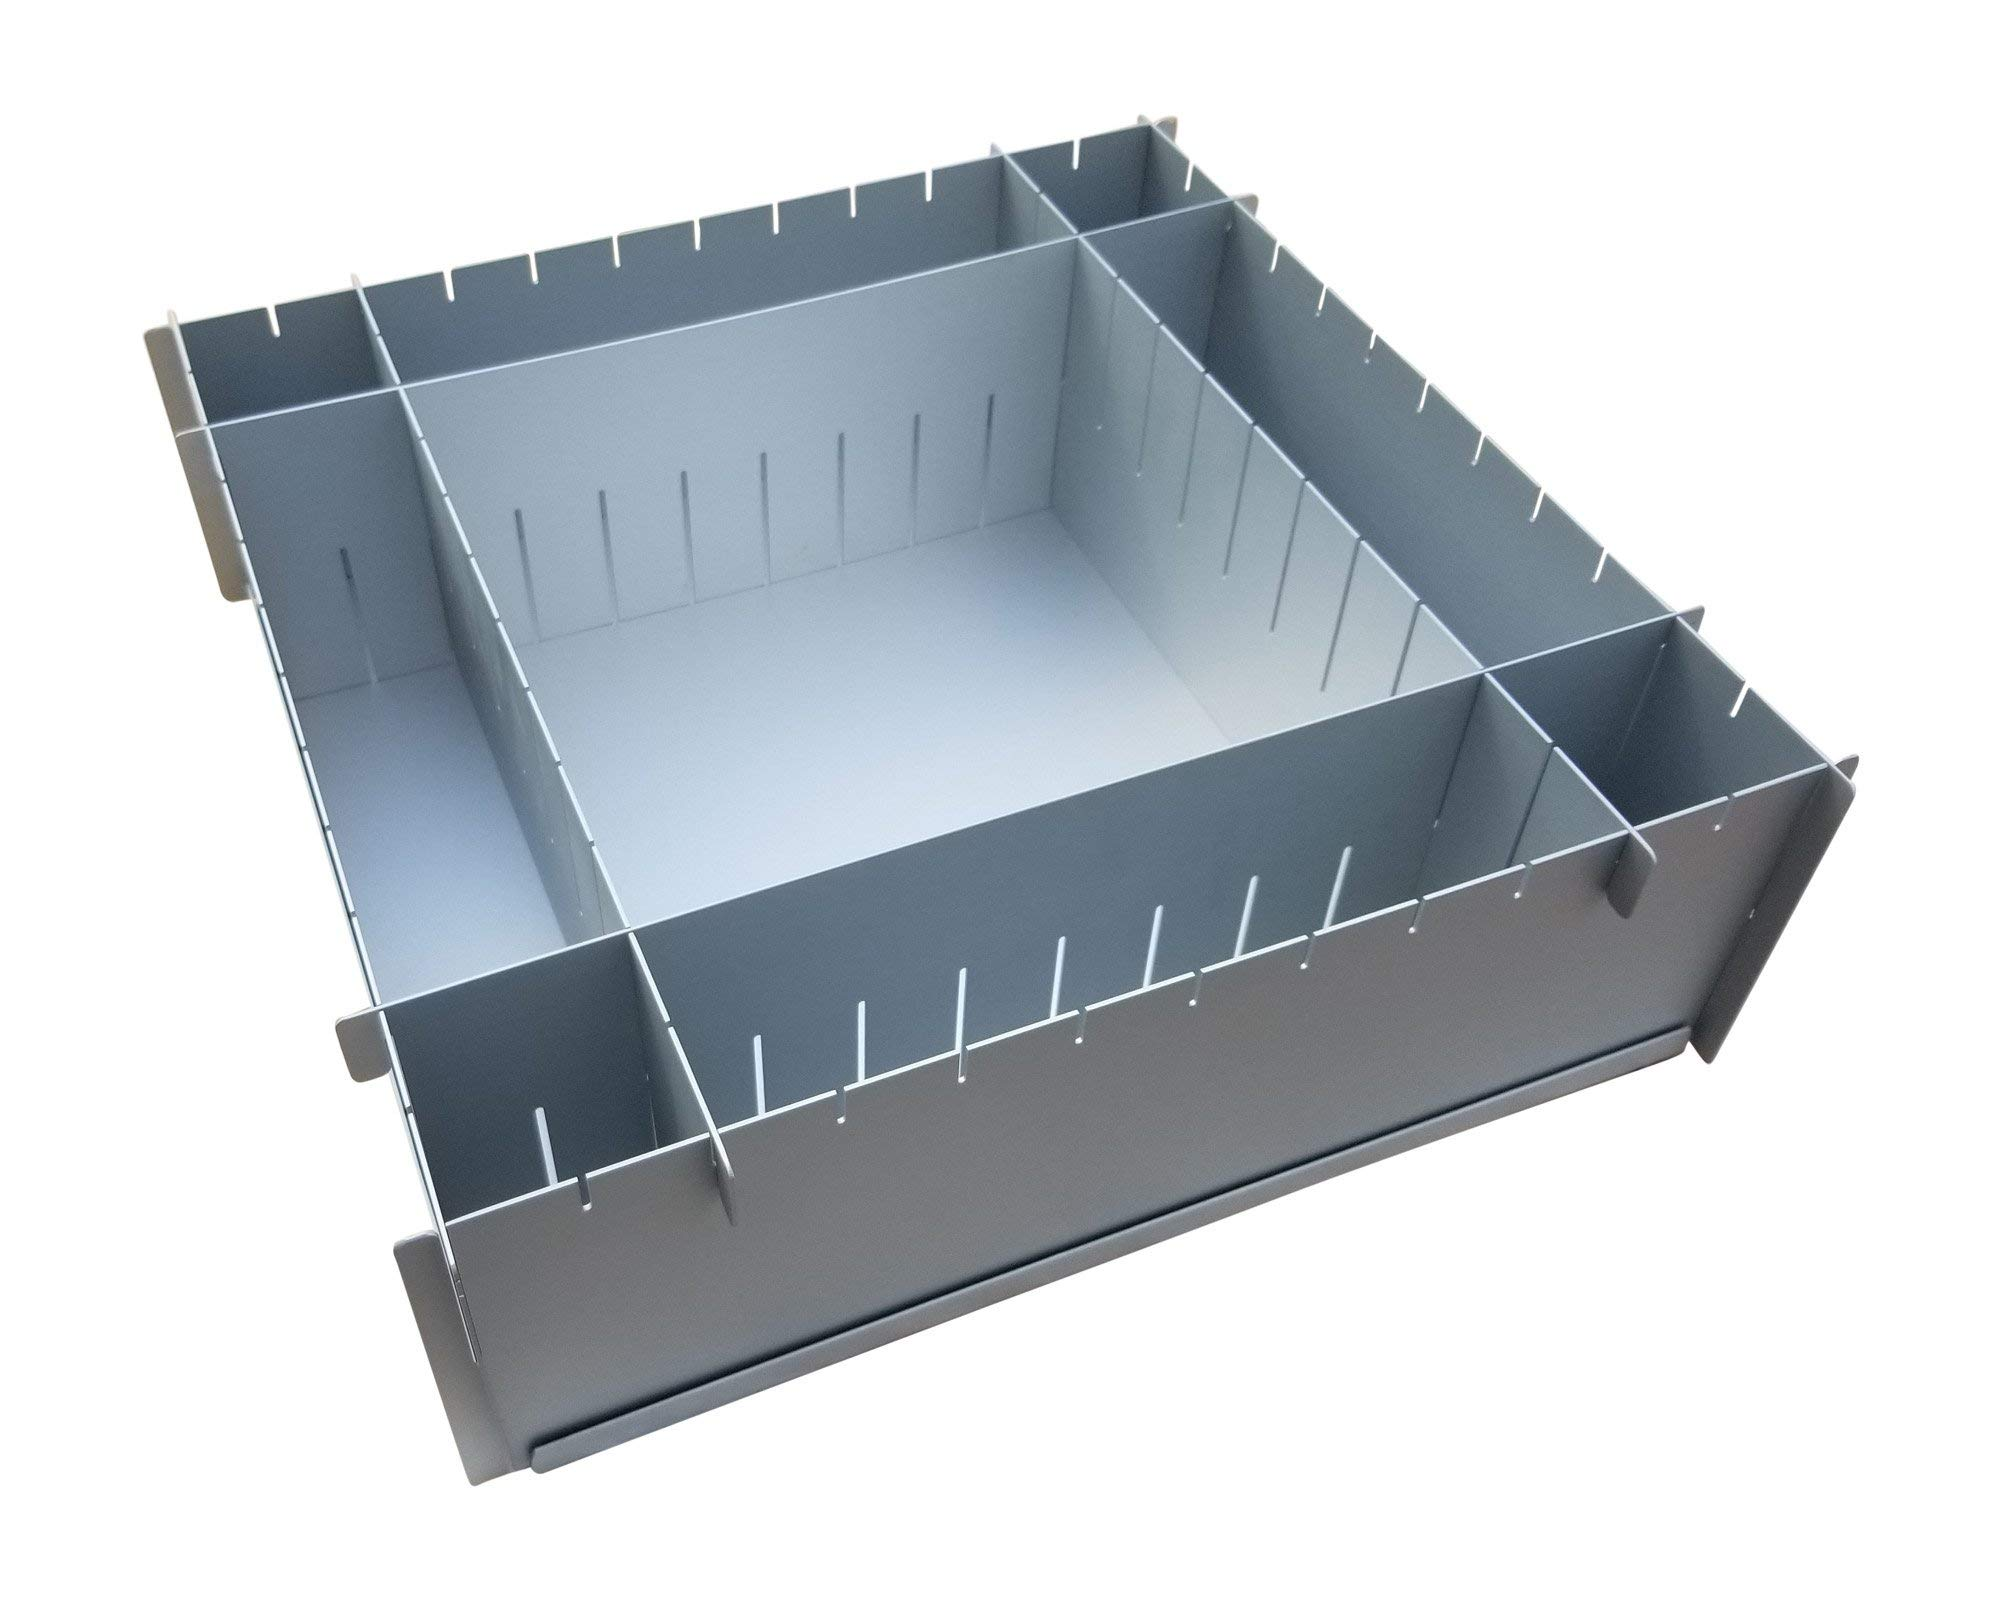 12'' x 4'' Deep Multisize Cake Pan With Extra Set Of Dividers - 4 Dividers Total - By H&L DesignWare by H&L DesignWare (Image #2)